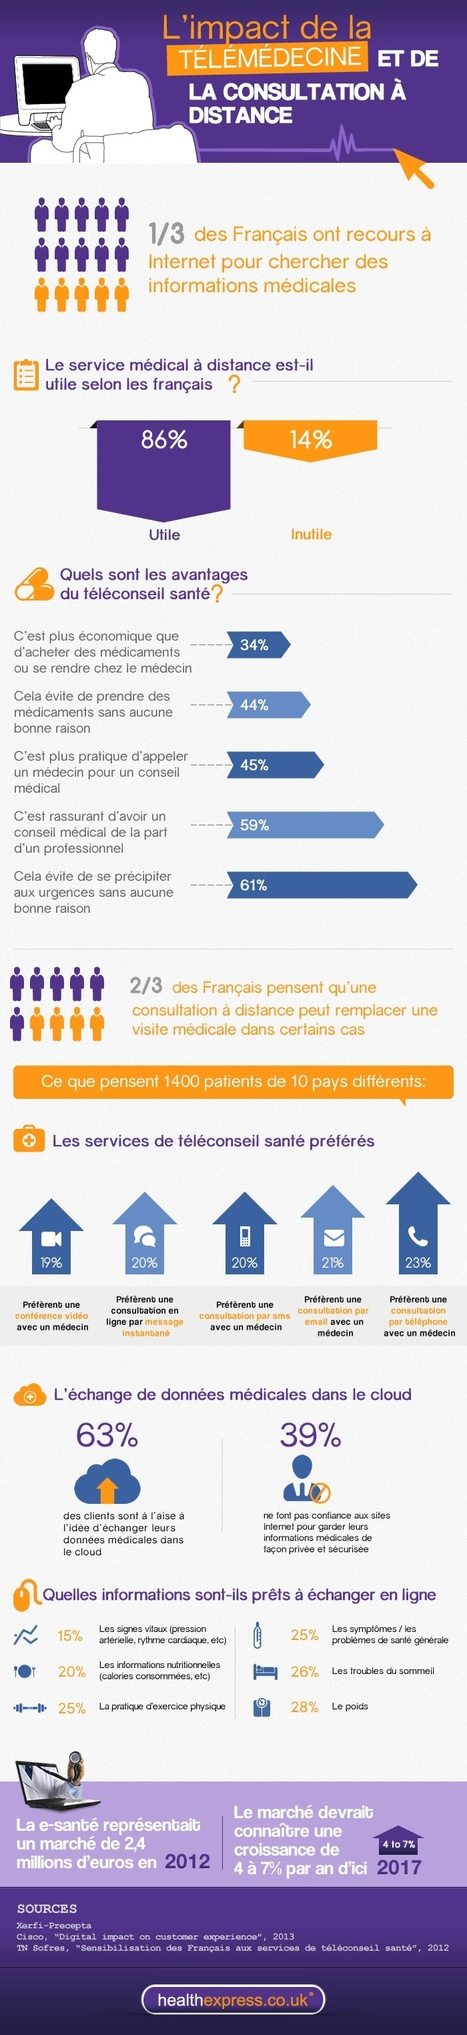 Infographie : L'impact de la télémédecine et de la consultation à distance | Marketing 3.0 | Scoop.it